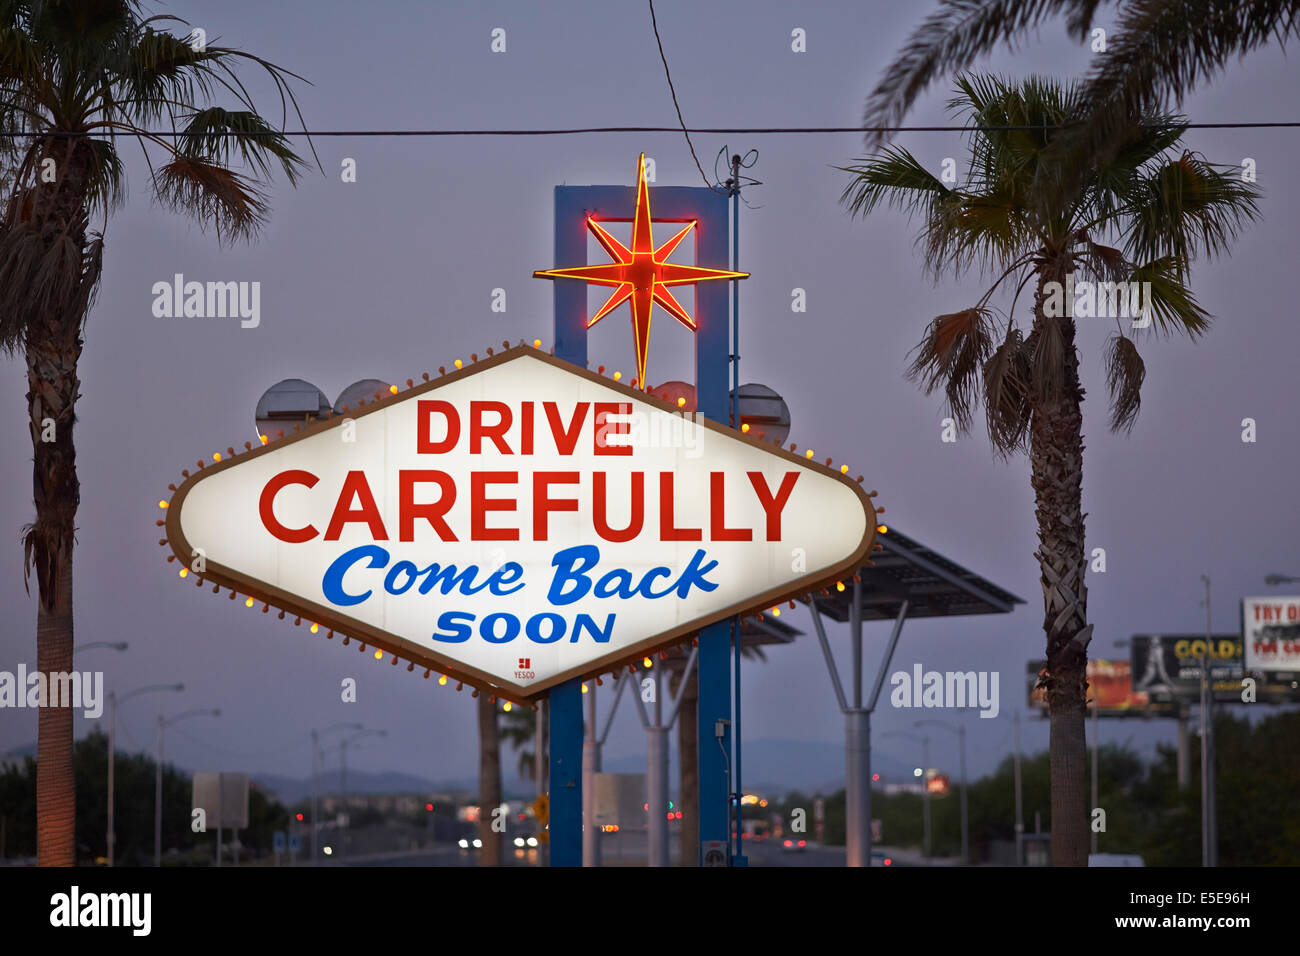 Stock footage welcome to fabulous las vegas sign with flashing lights - Back Of The Welcome To Fabulous Las Vegas Sign And Tourist Landmark Funded In May